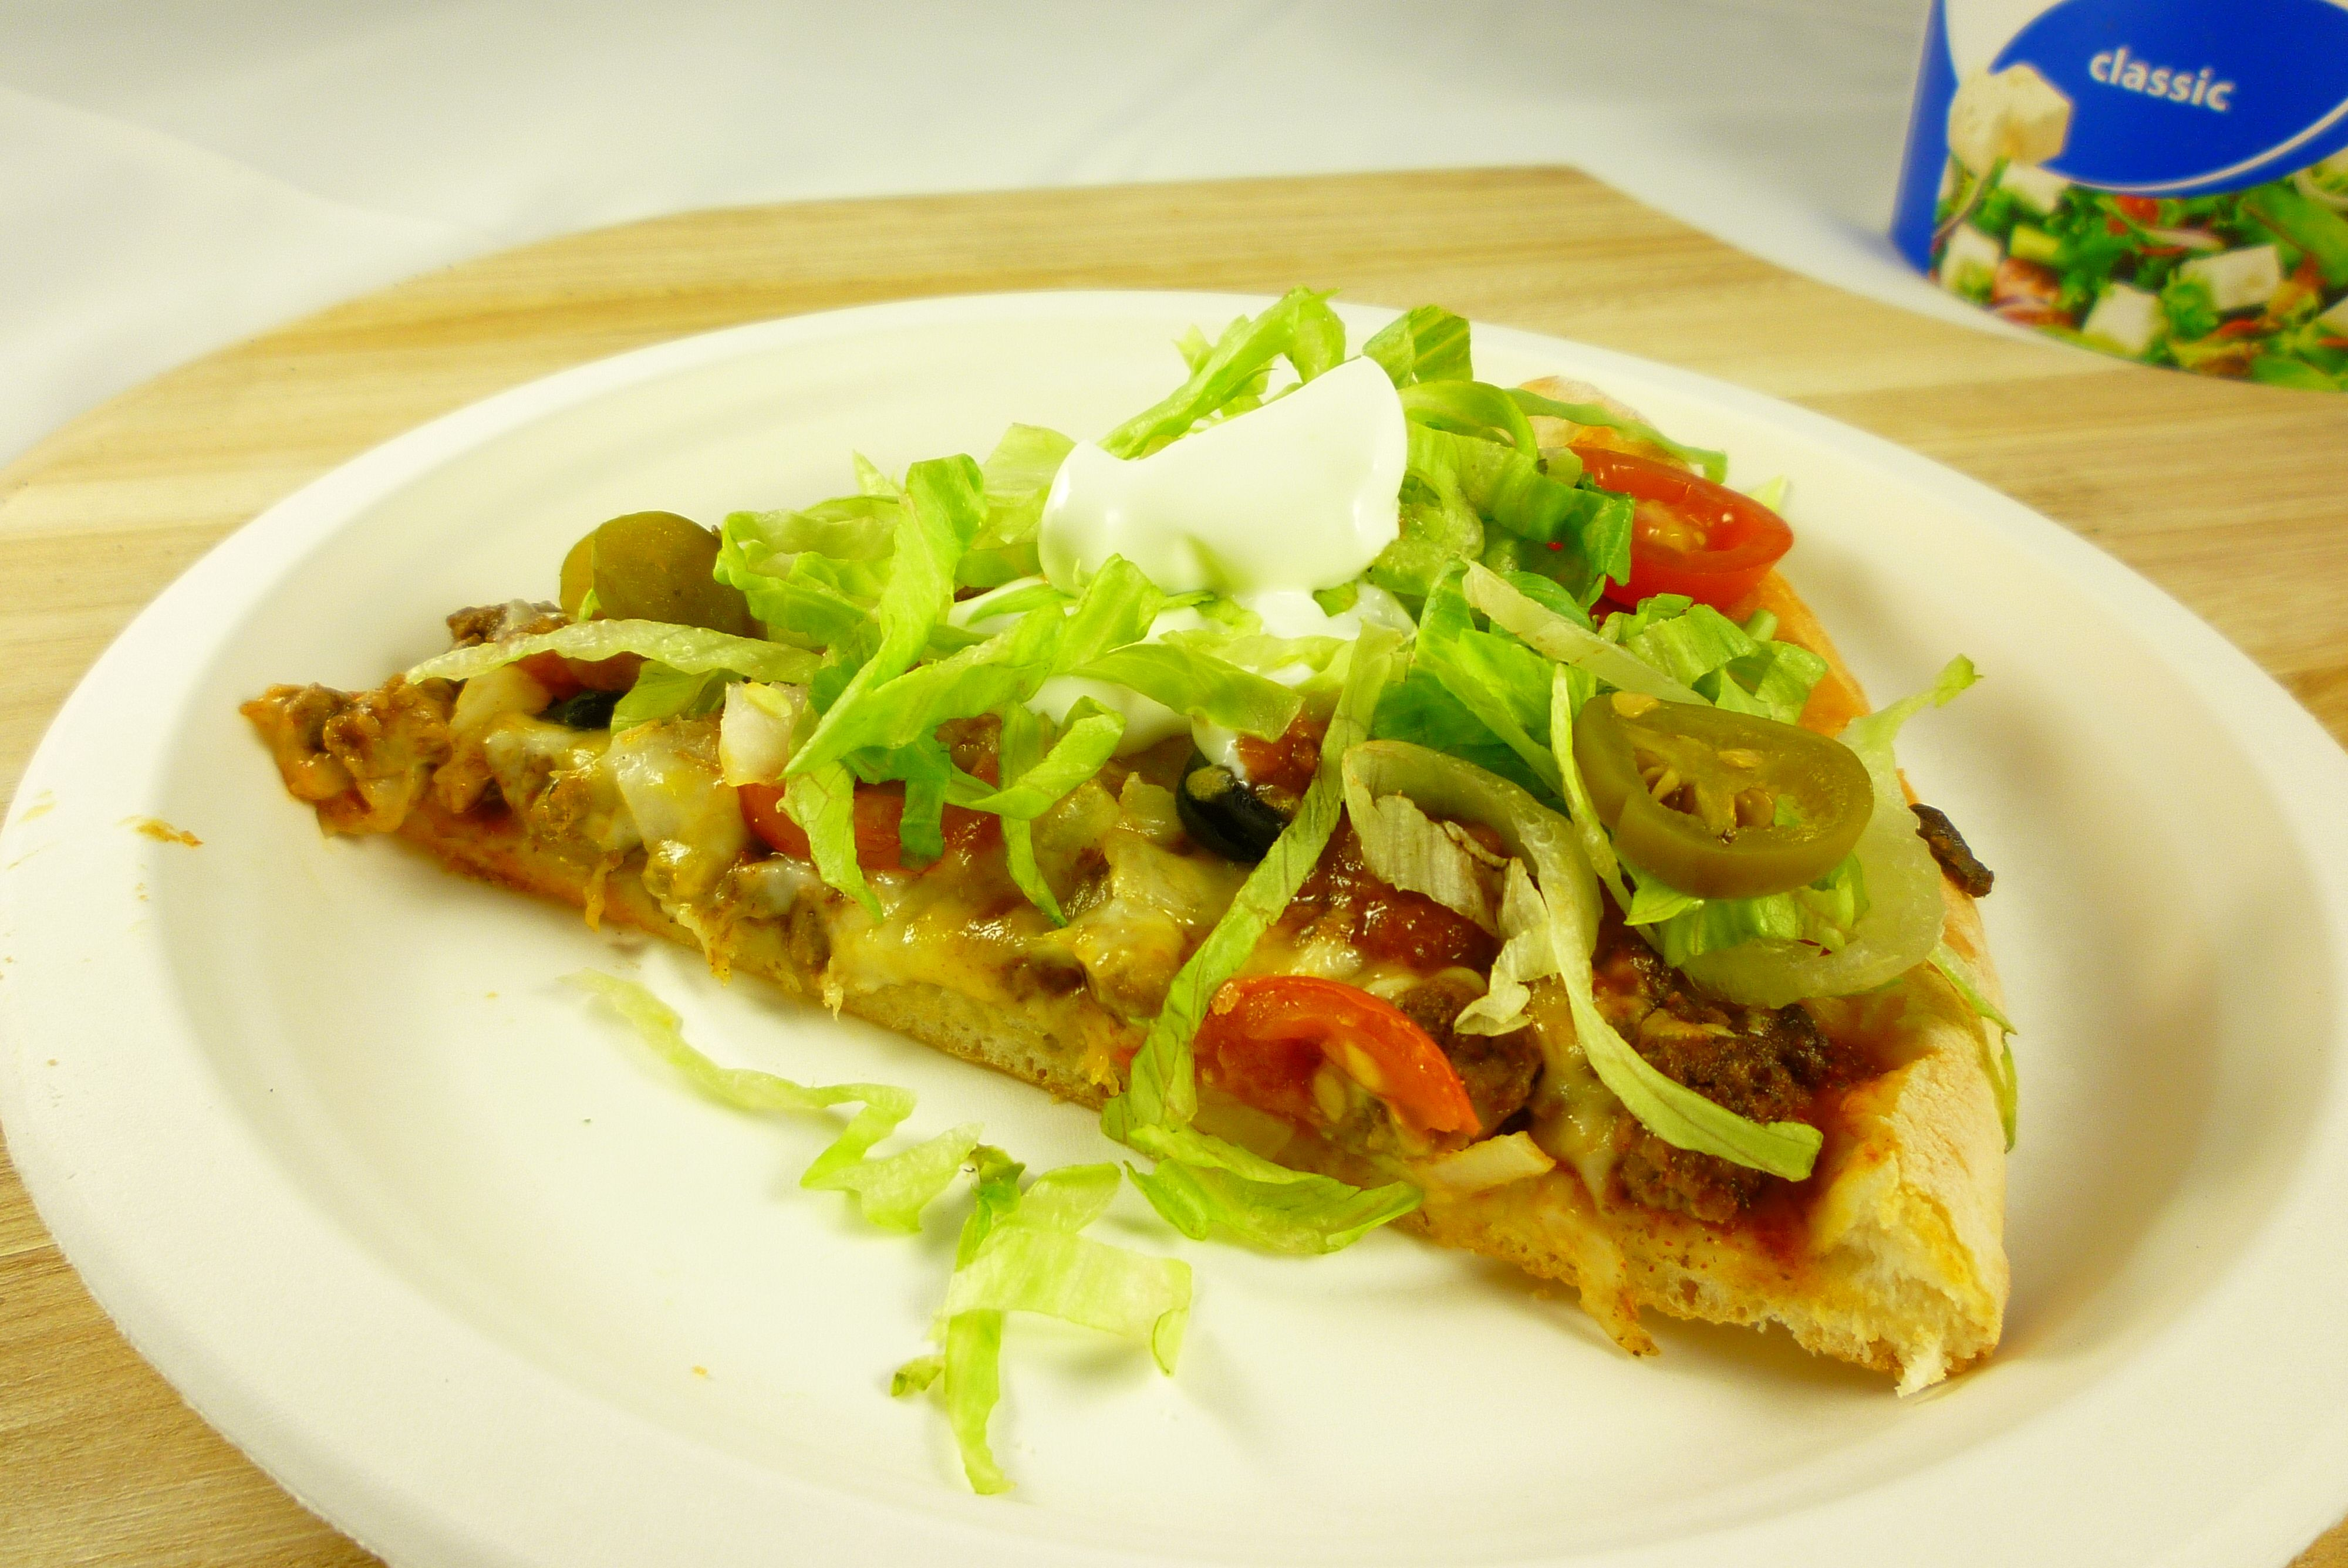 Mexican Pizza slice with lettuce, salsa and sour cream